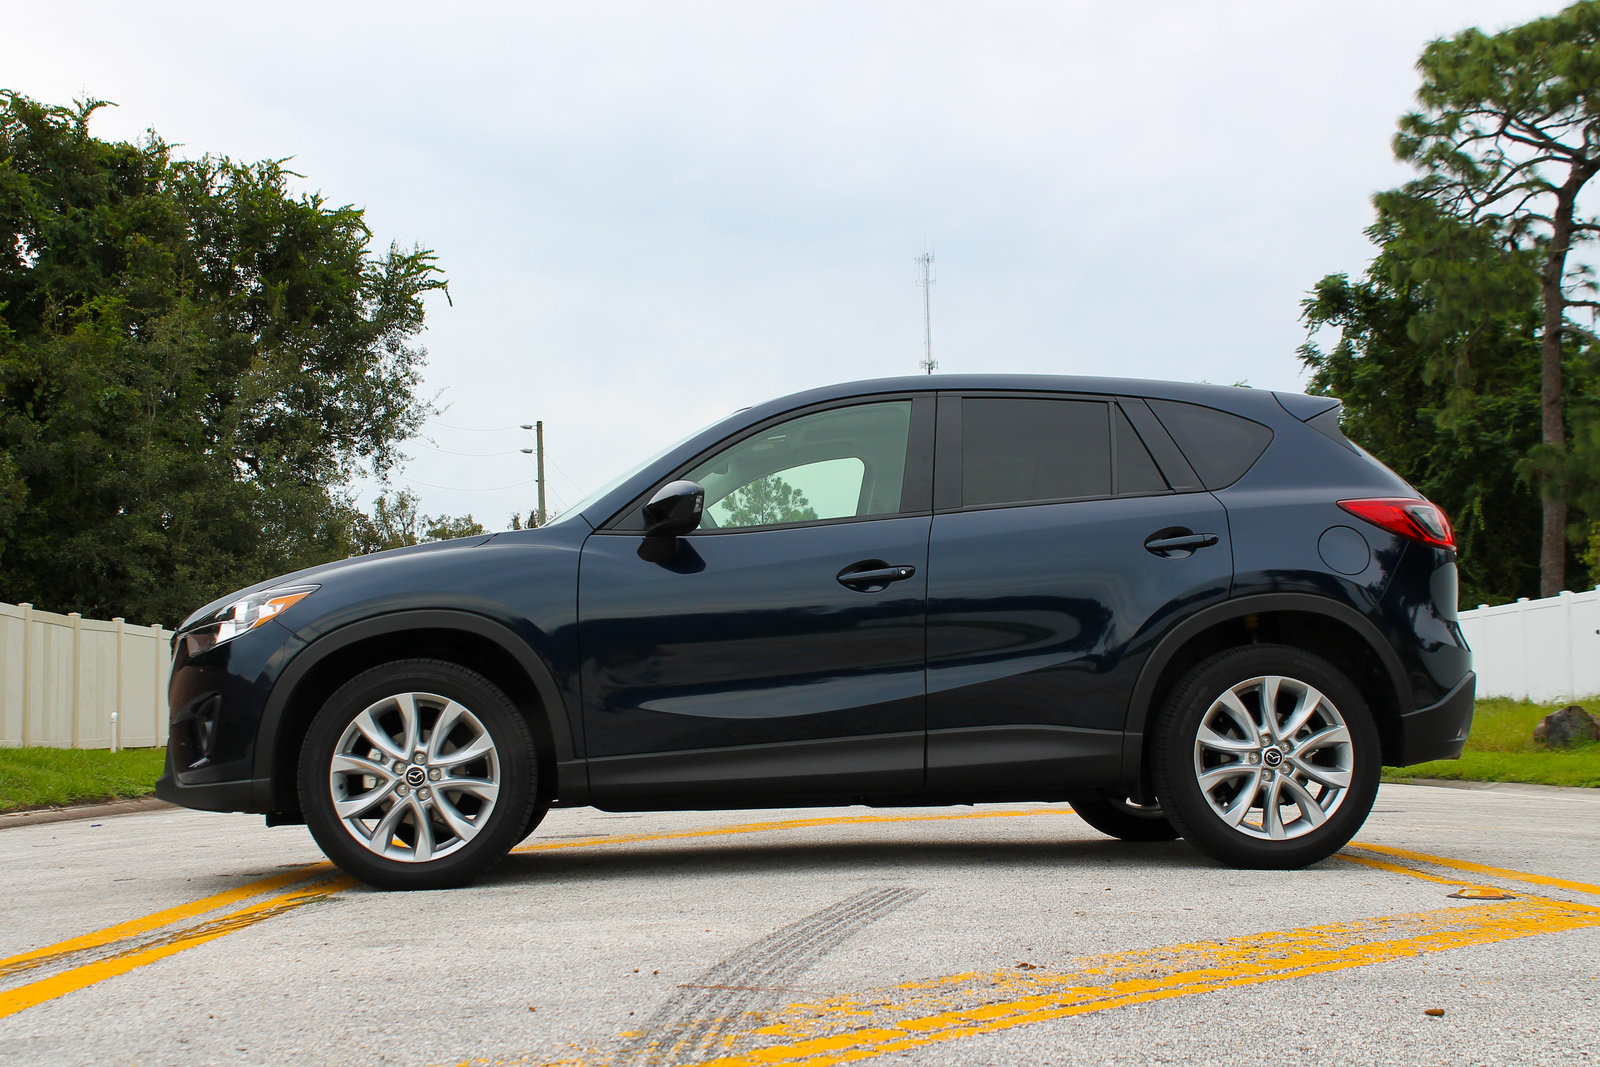 2015 mazda cx 5 grand touring w tech package driven picture 572467 car review top speed. Black Bedroom Furniture Sets. Home Design Ideas